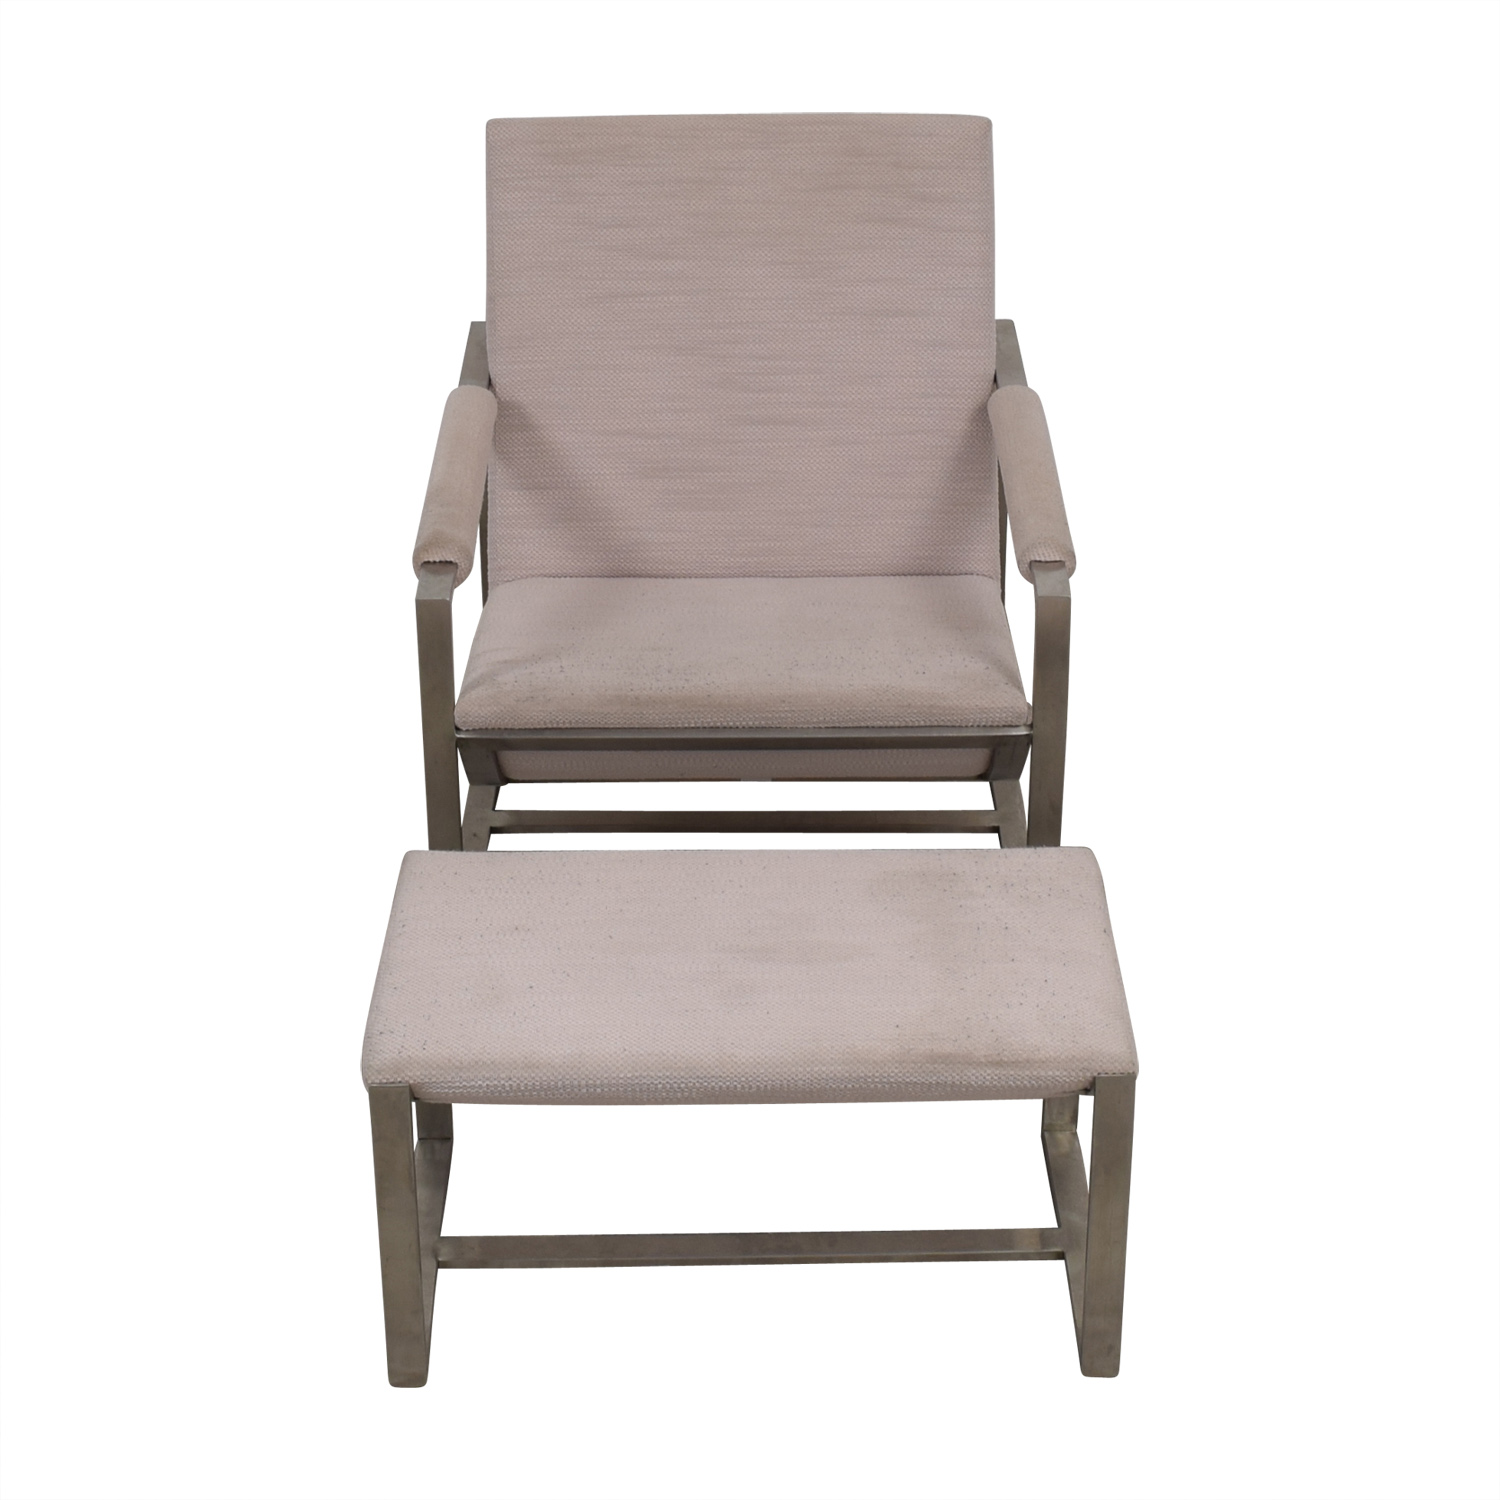 90 Off West Elm West Elm Cream Chair And Foot Stool